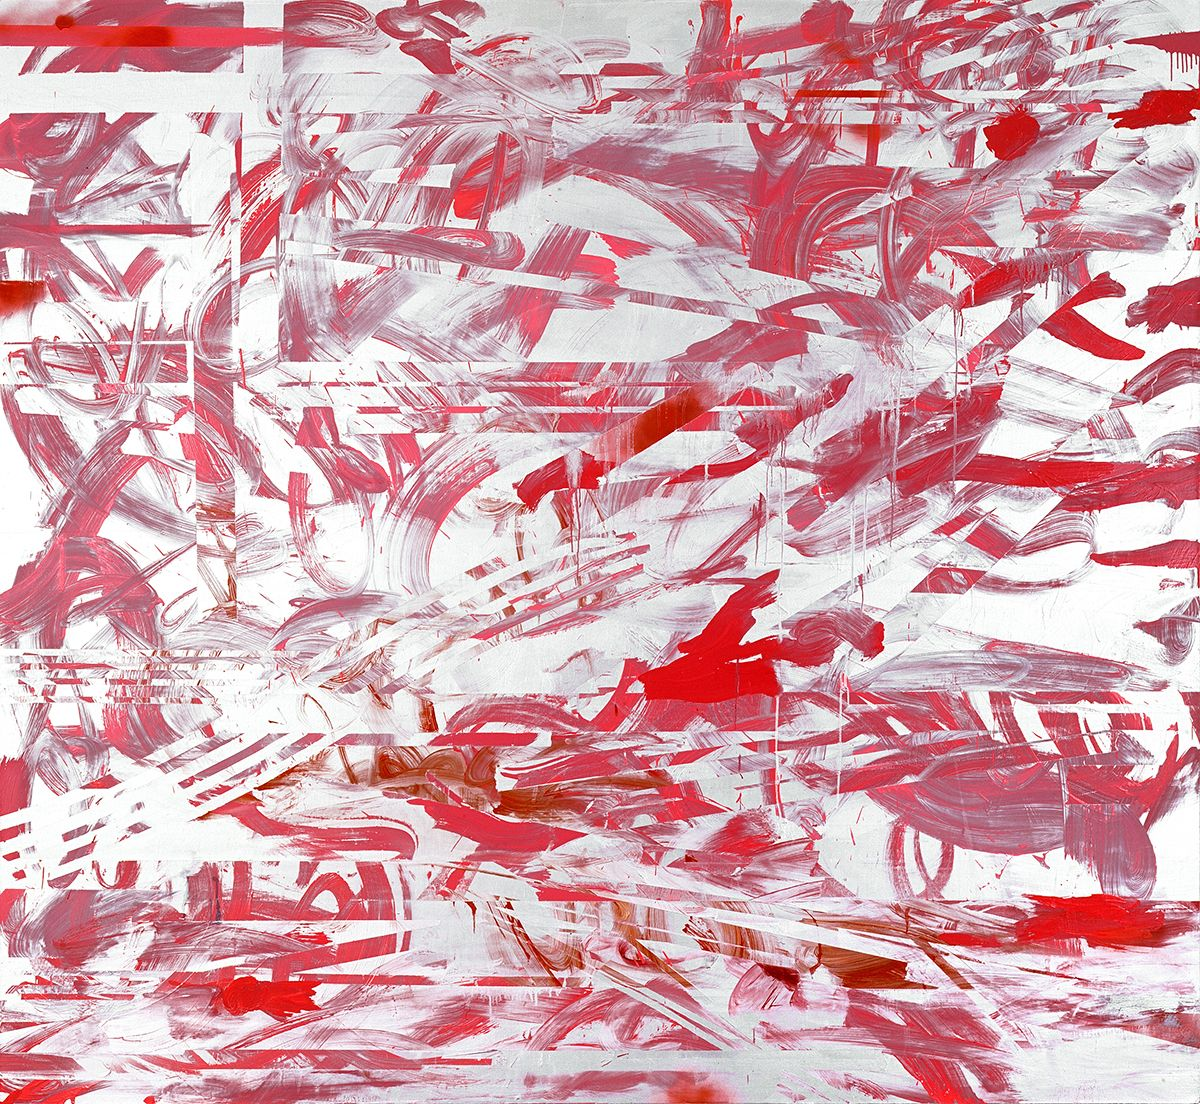 Jacqueline Humphries  Good'n Plenty, 2007  Oil and enamel on linen  80 x 87 inches (203.2 x 221 cm)